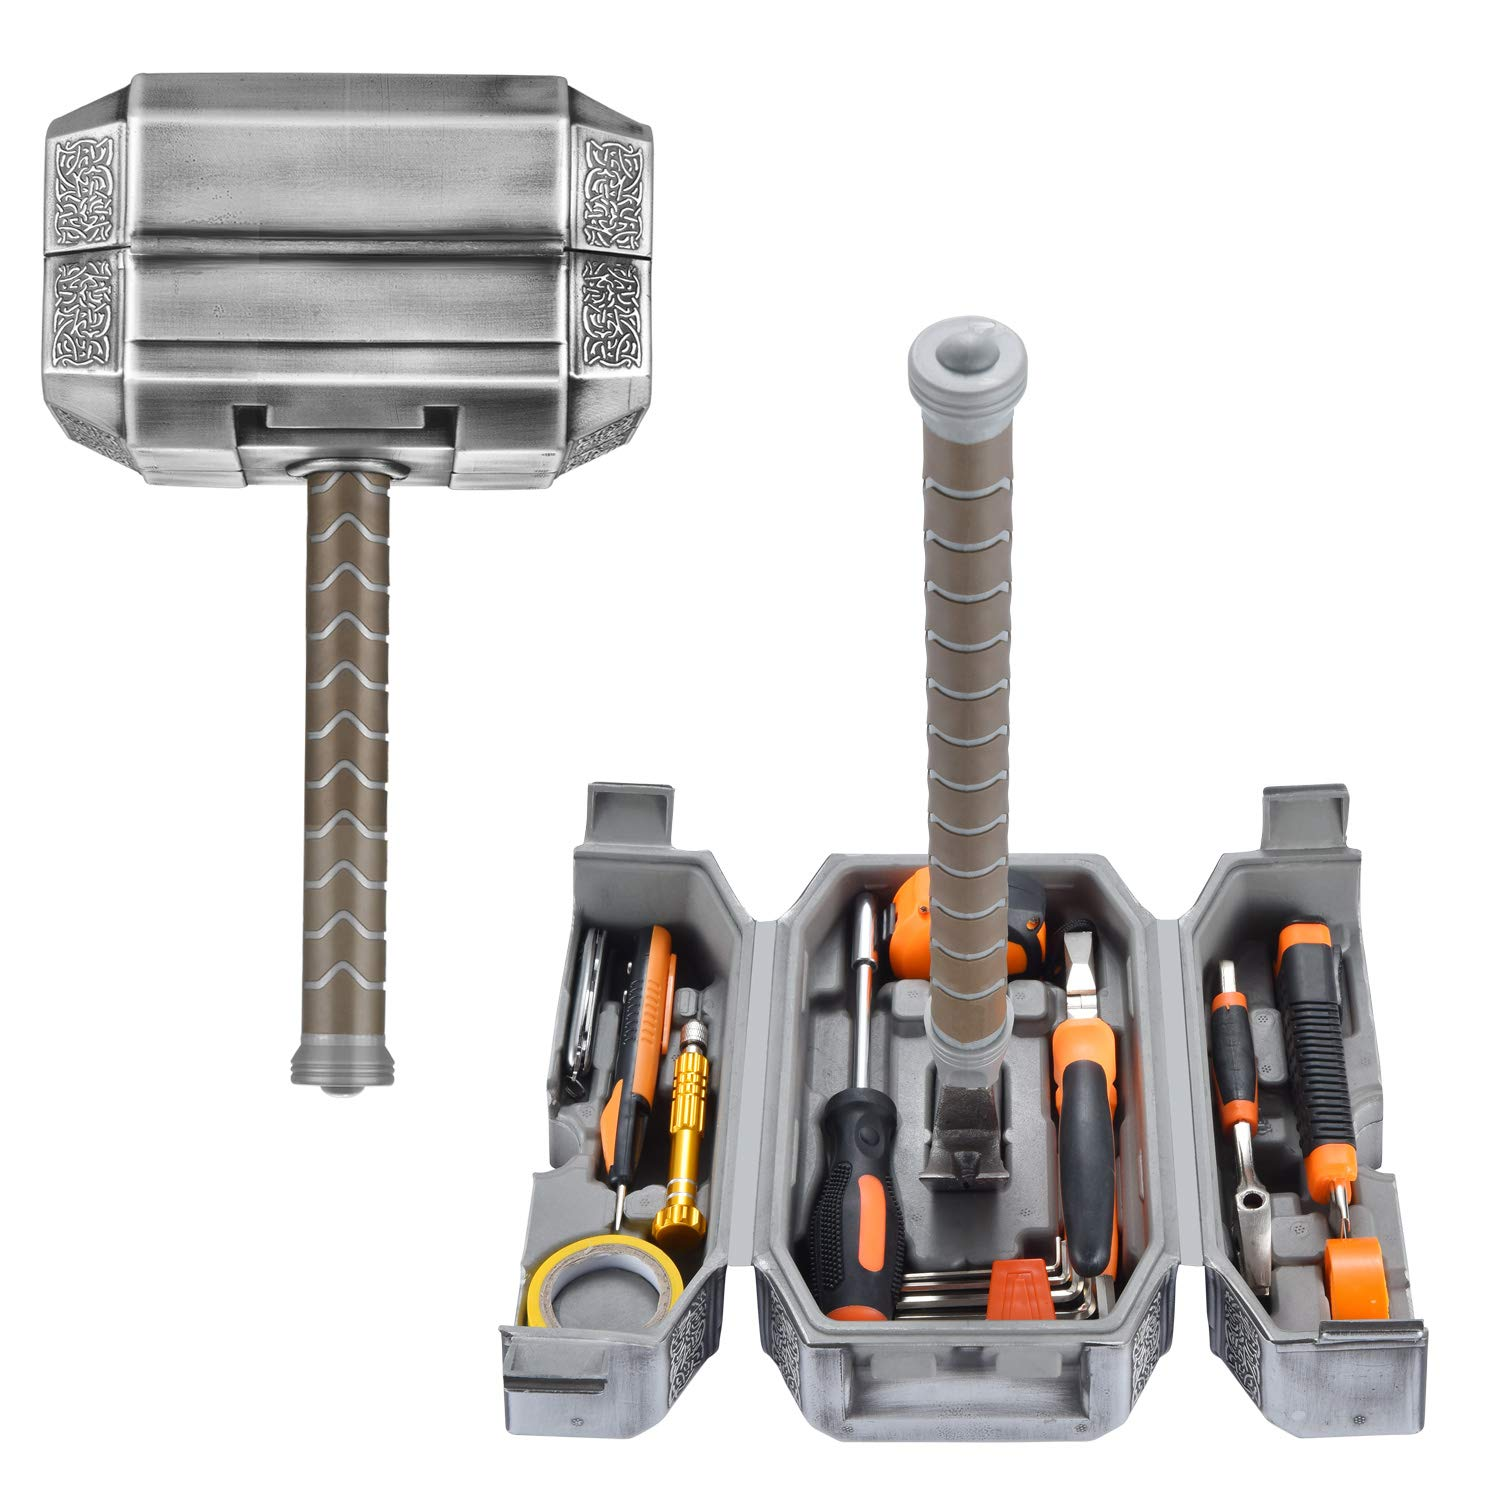 Buyton Avengers Thor Hammer Tool Set,28-Piece Household Hand Tool Kit -Thor Battle Hammer,Durable, Long Lasting Chrome Finish Tools with Thor Hammer case by buyton (Image #1)